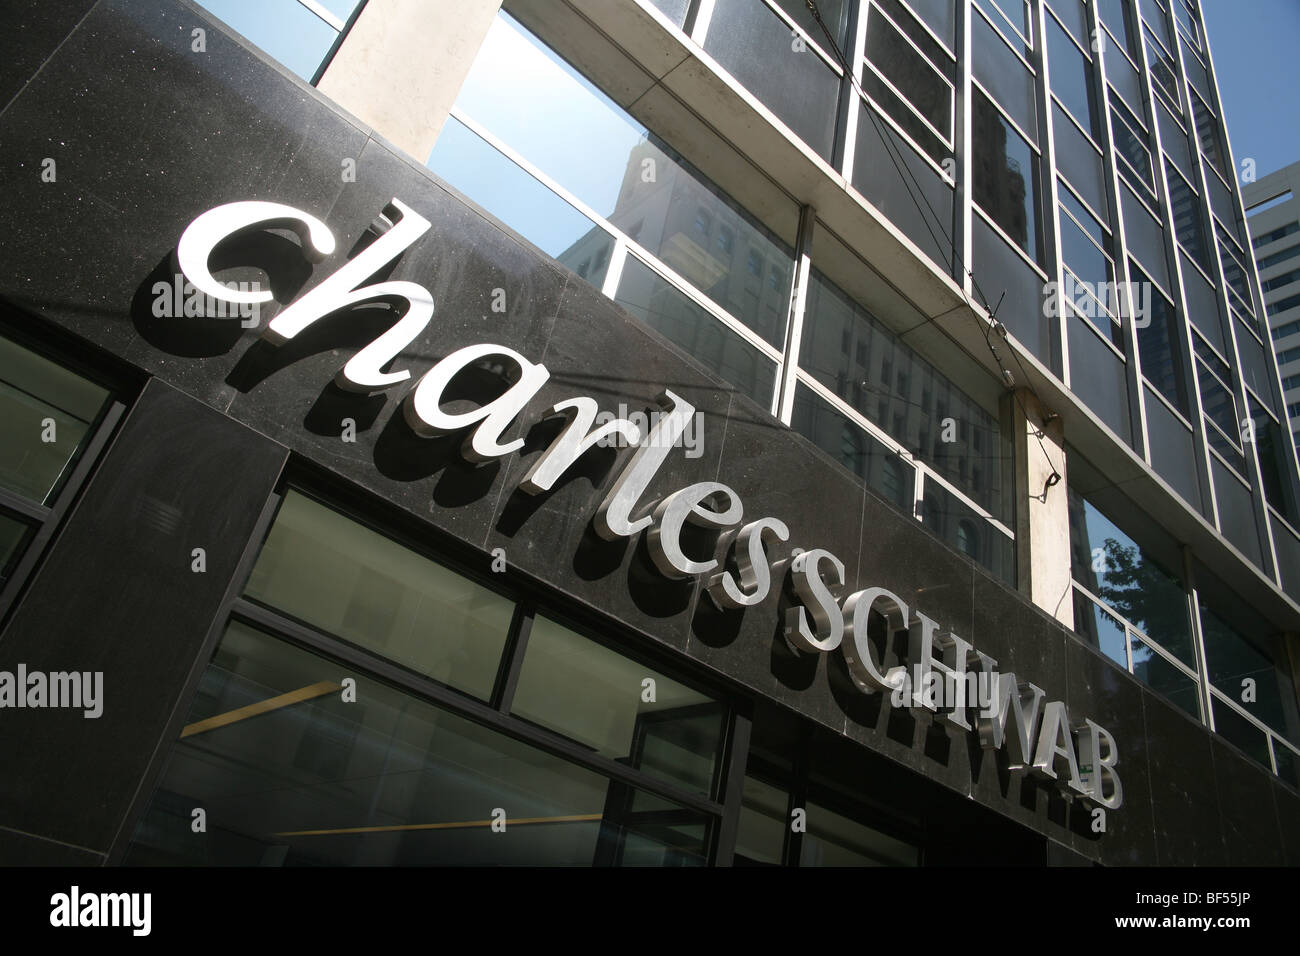 Charles Schwab logo. No property release. Editorial usage only. - Stock Image